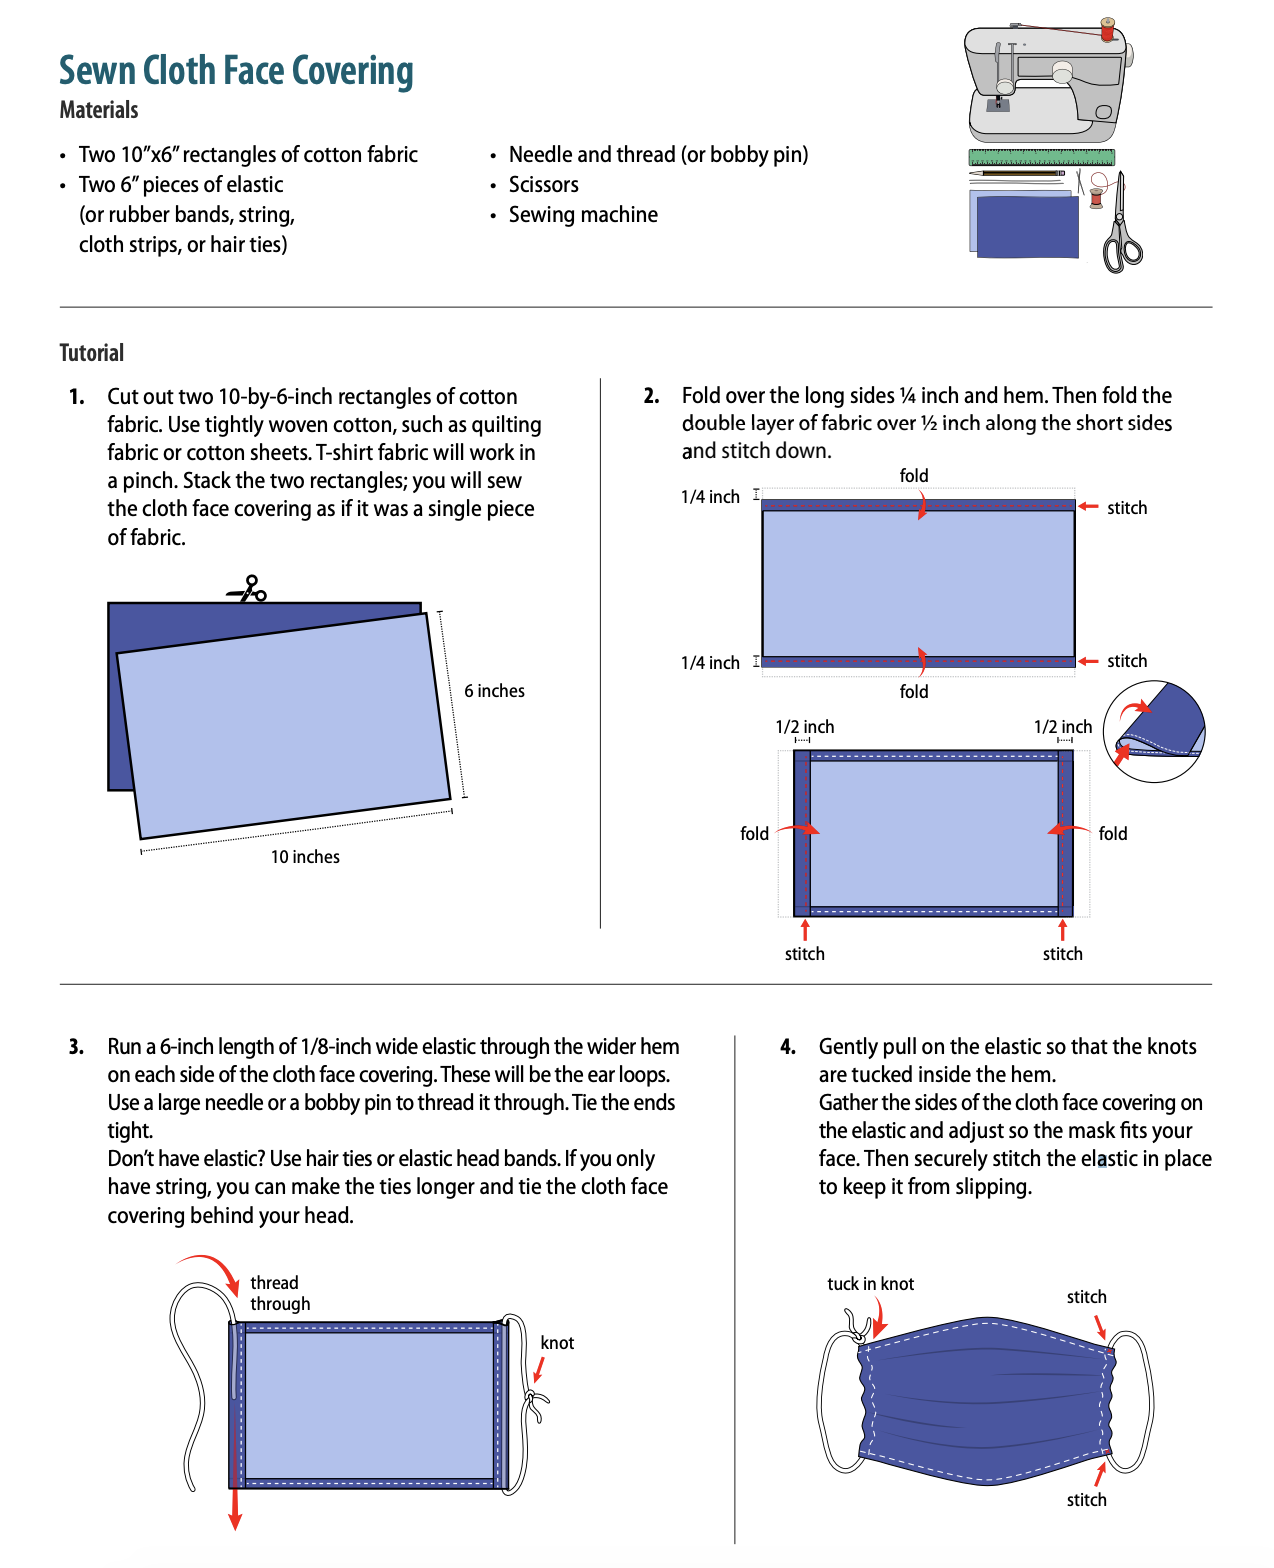 How to make a sewn cloth face covering materials and tutorial. Provided by the CDC.